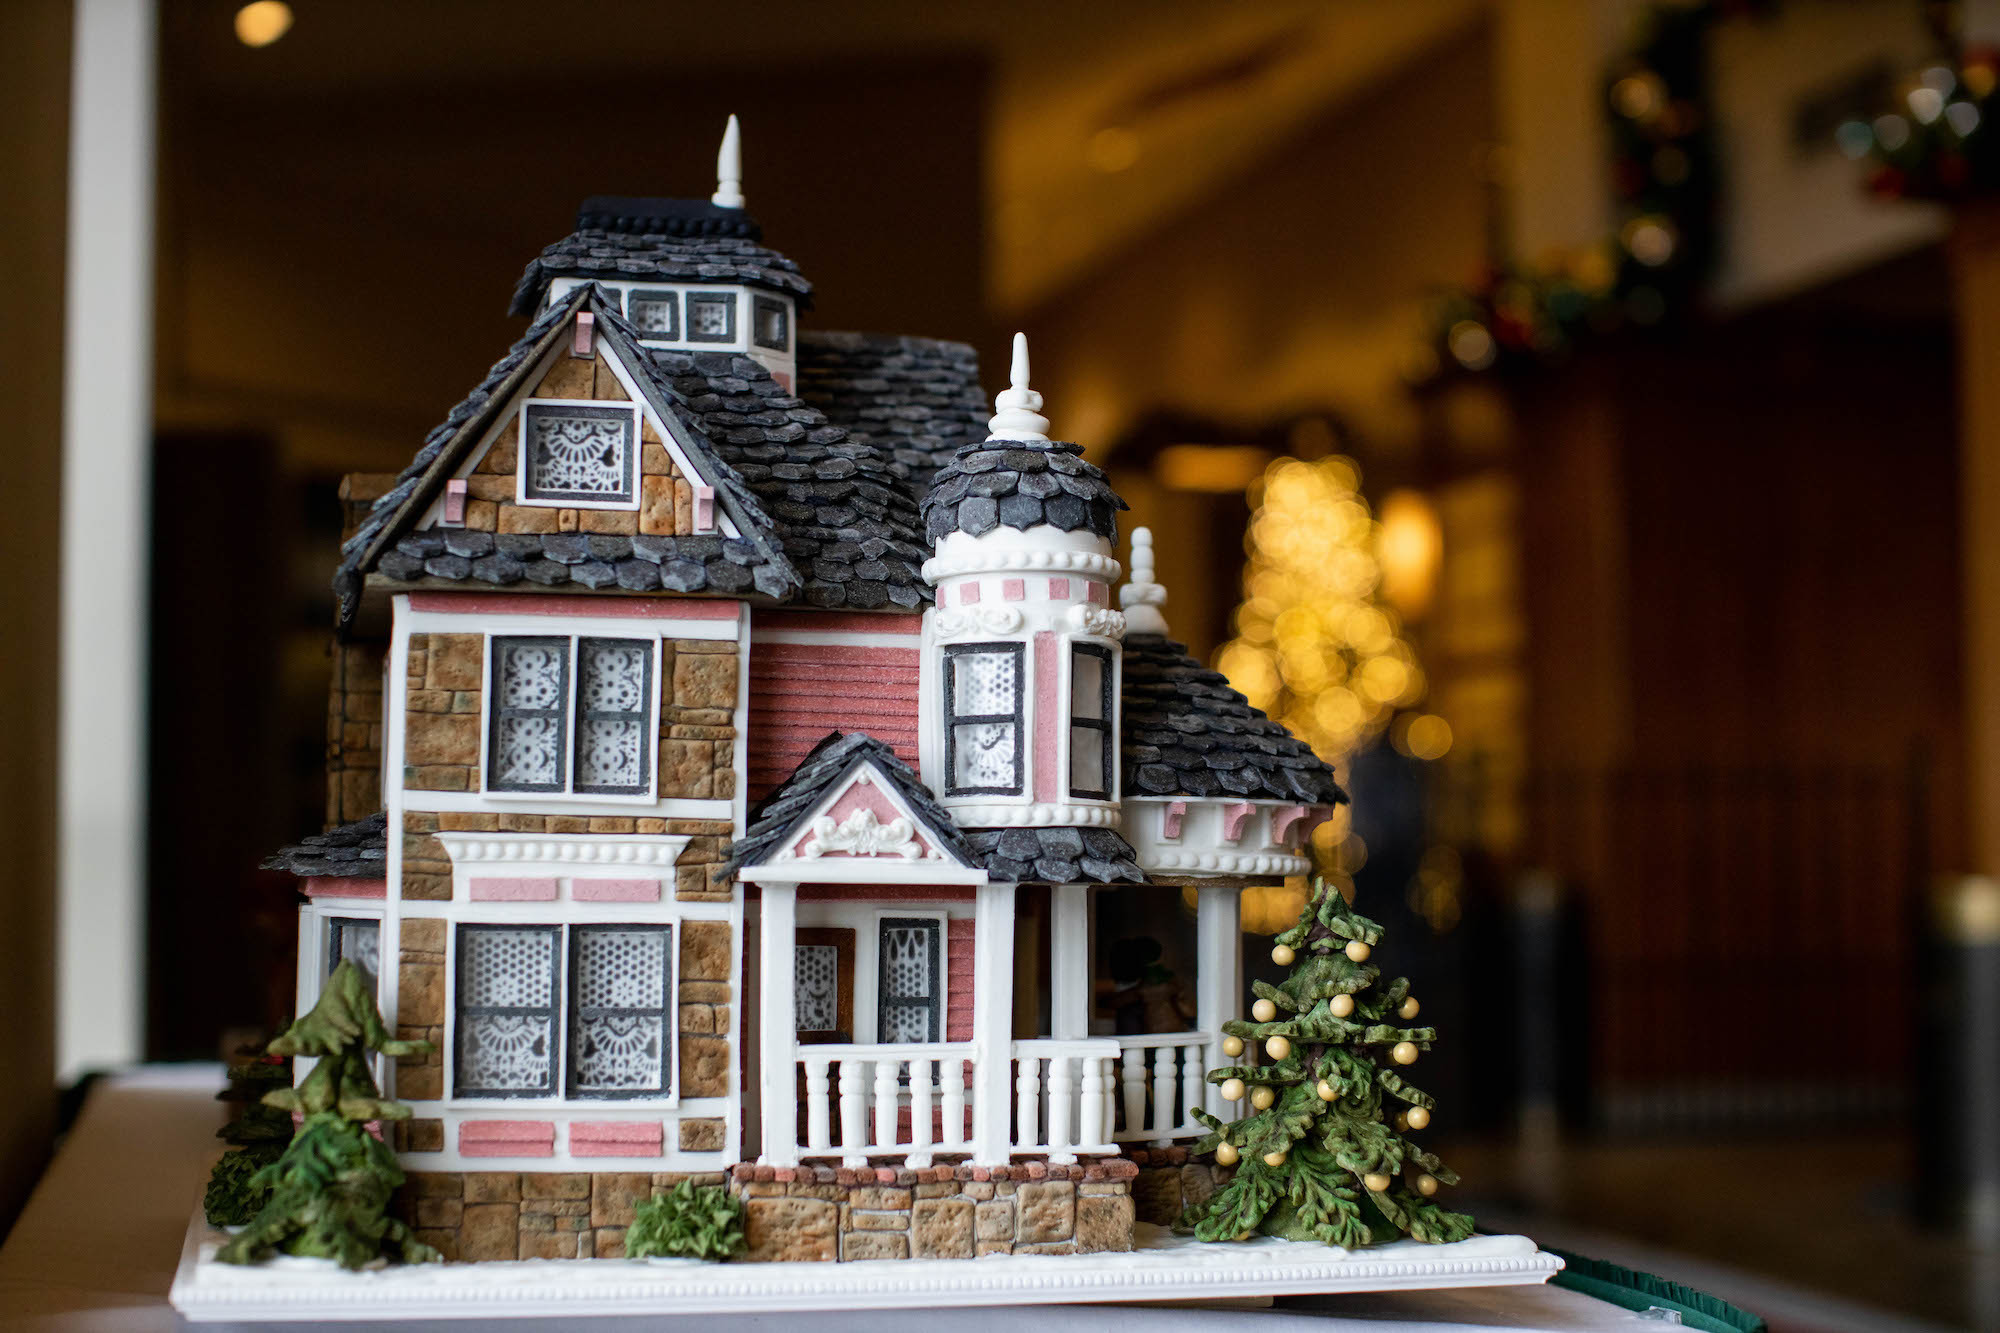 Gingerbread house featured at The Omni Grove Park Inn in 2019 | Photo provided